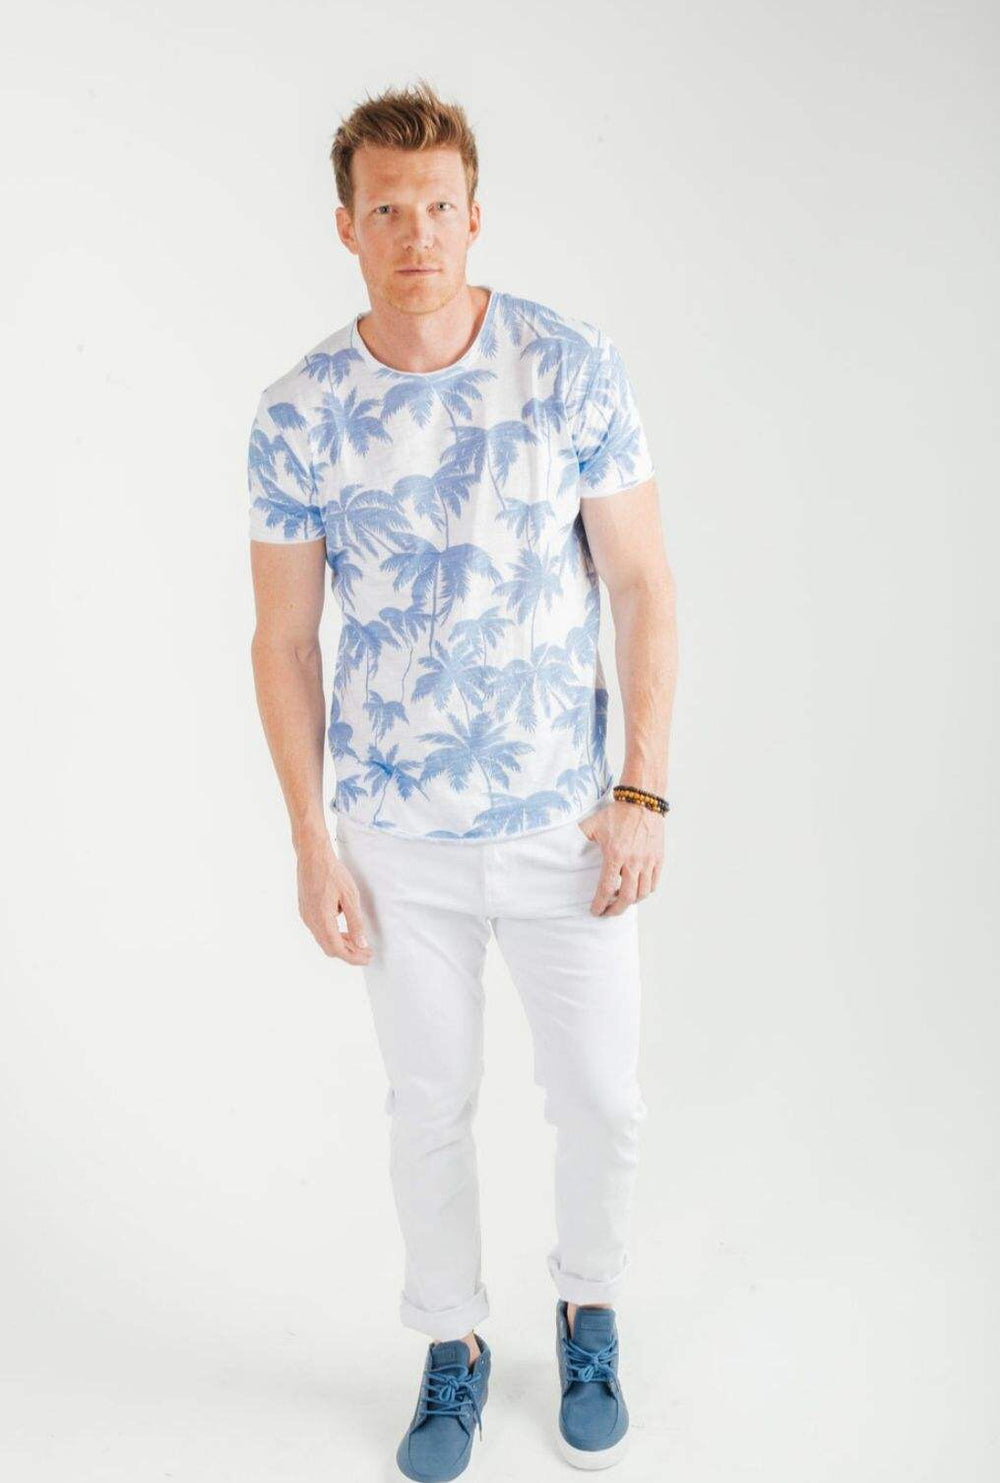 Y.two Miami Palm T-shirt